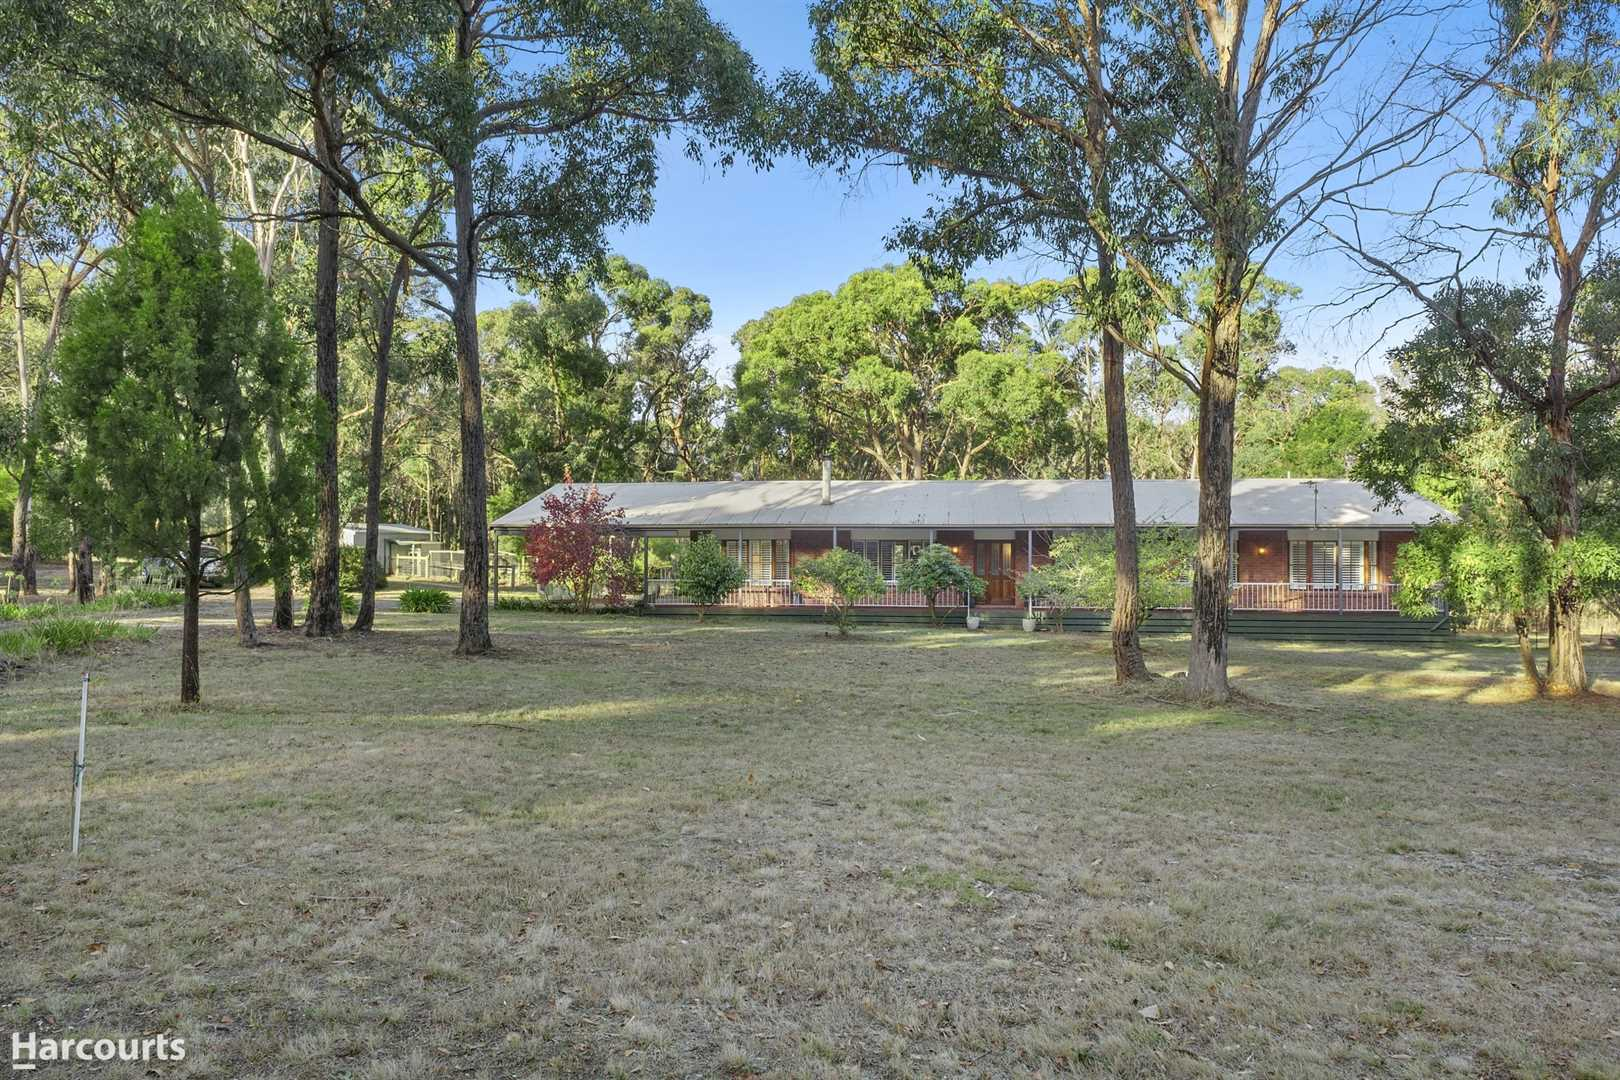 Family Living With Immaculate Home - Approx. 2 Acres